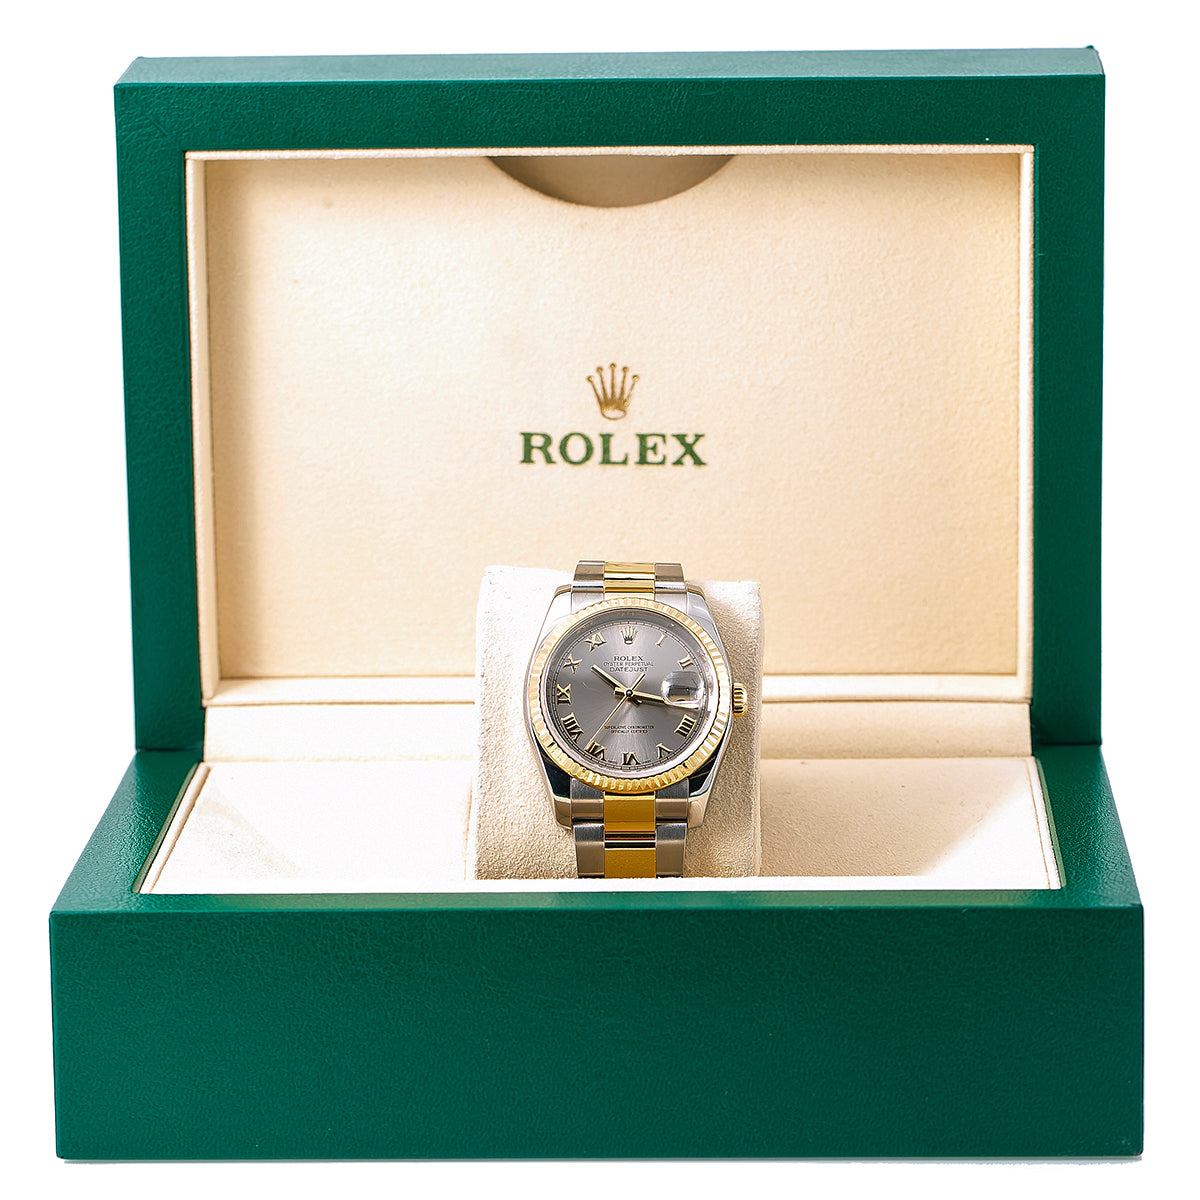 Rolex Datejust 116233 36MM Silver Dial With Two Tone Bracelet